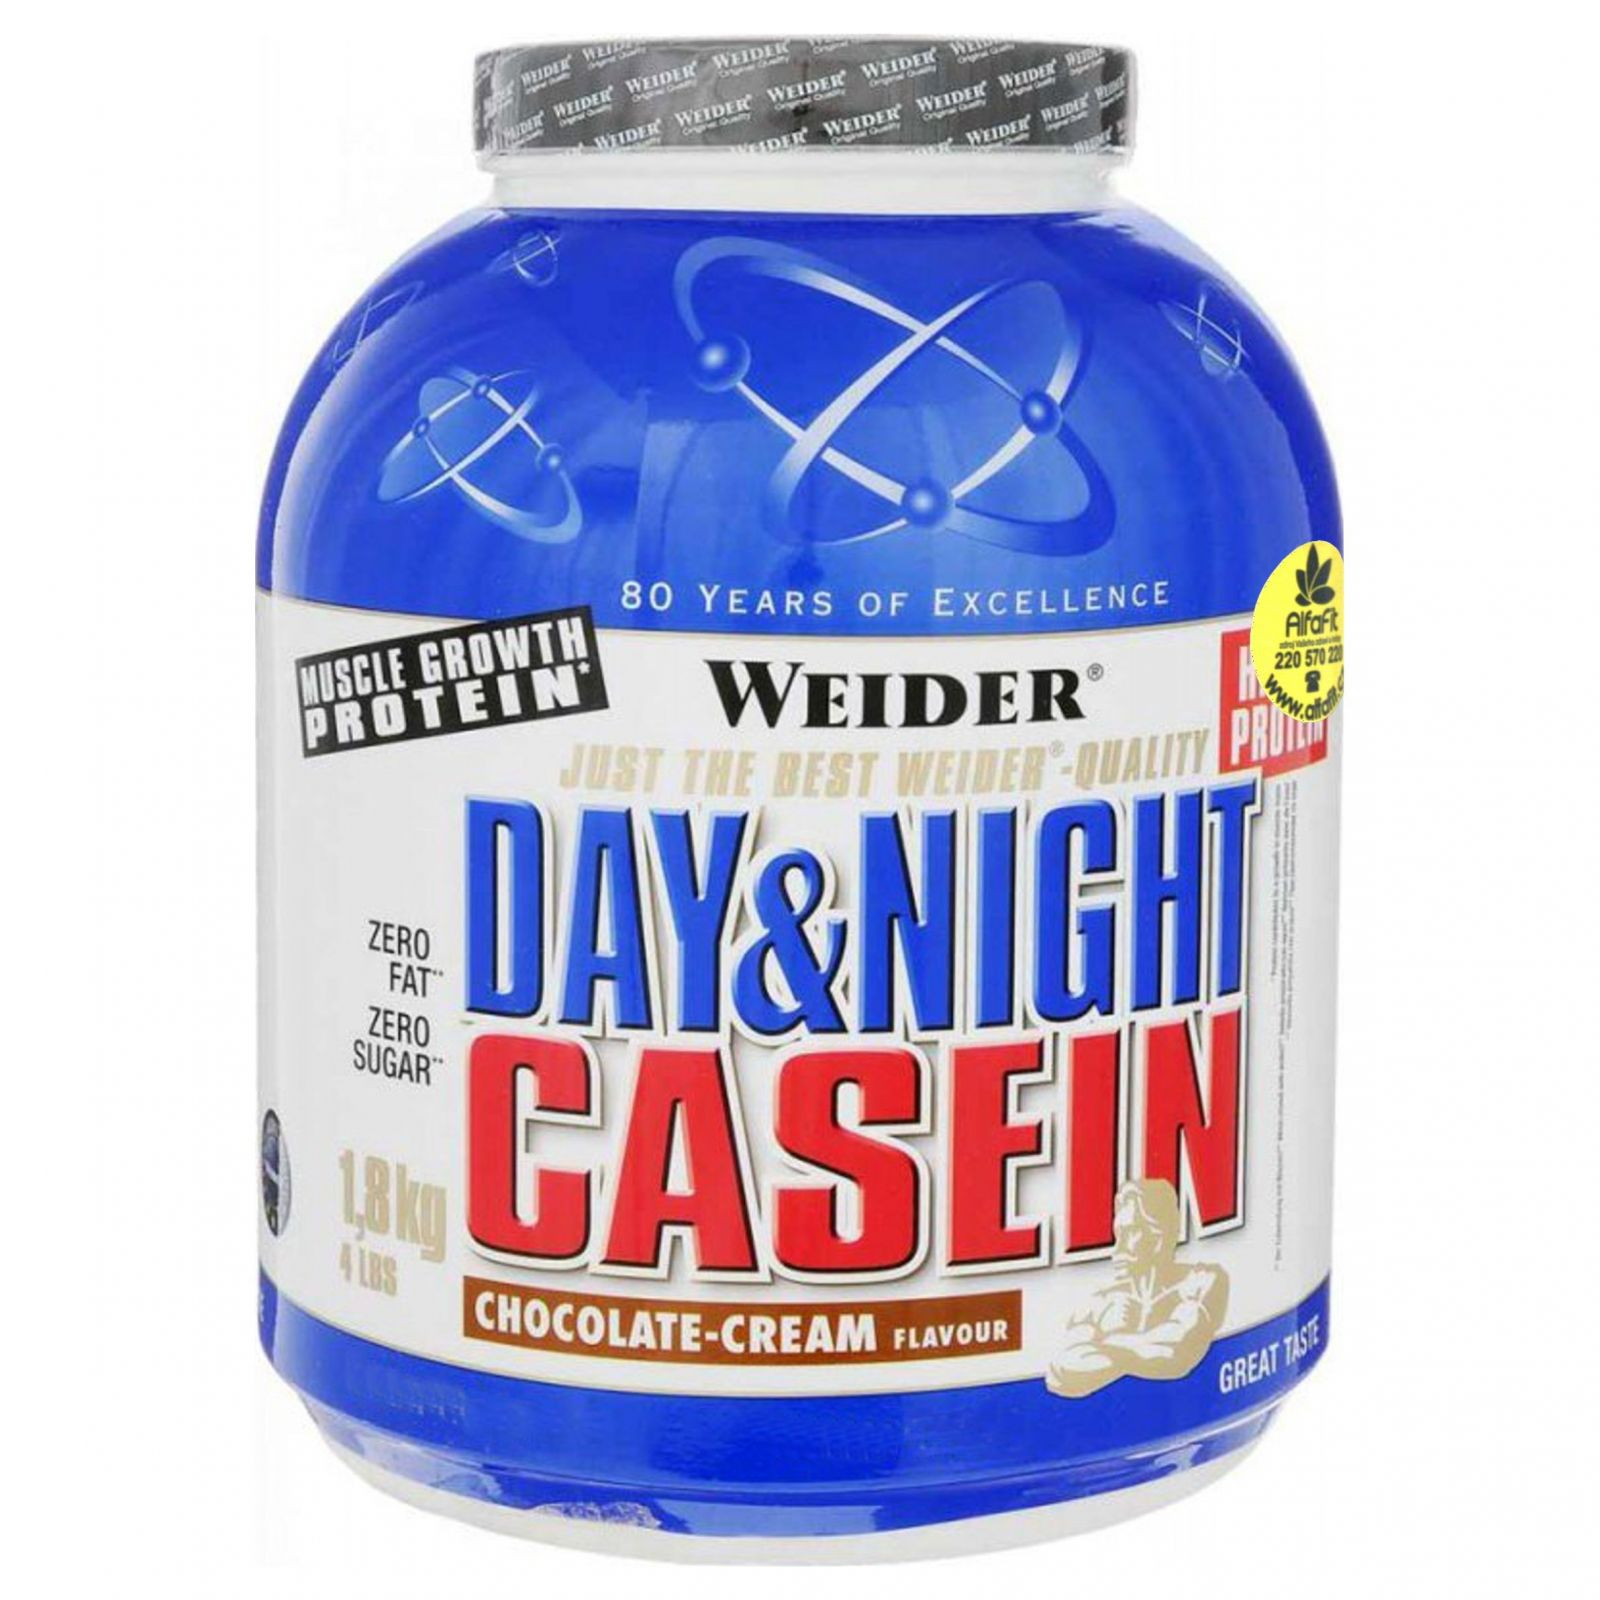 Weider Day & Night Casein (100% Casein) 1800 g